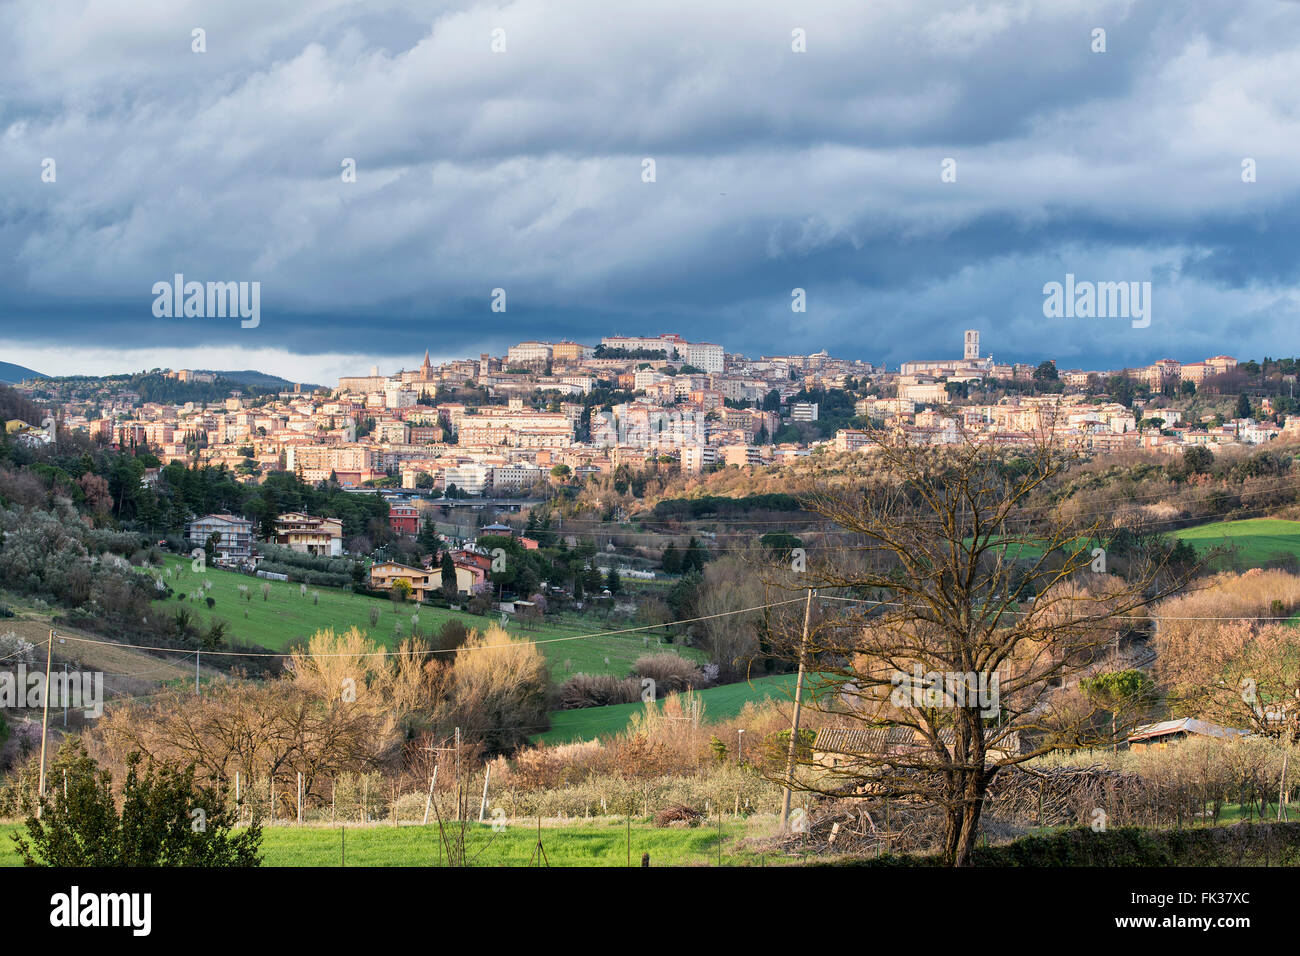 Perugia, Umbria. Green heart of Italy. A panoramic view of the city with its beautiful and lush green countryside Stock Photo